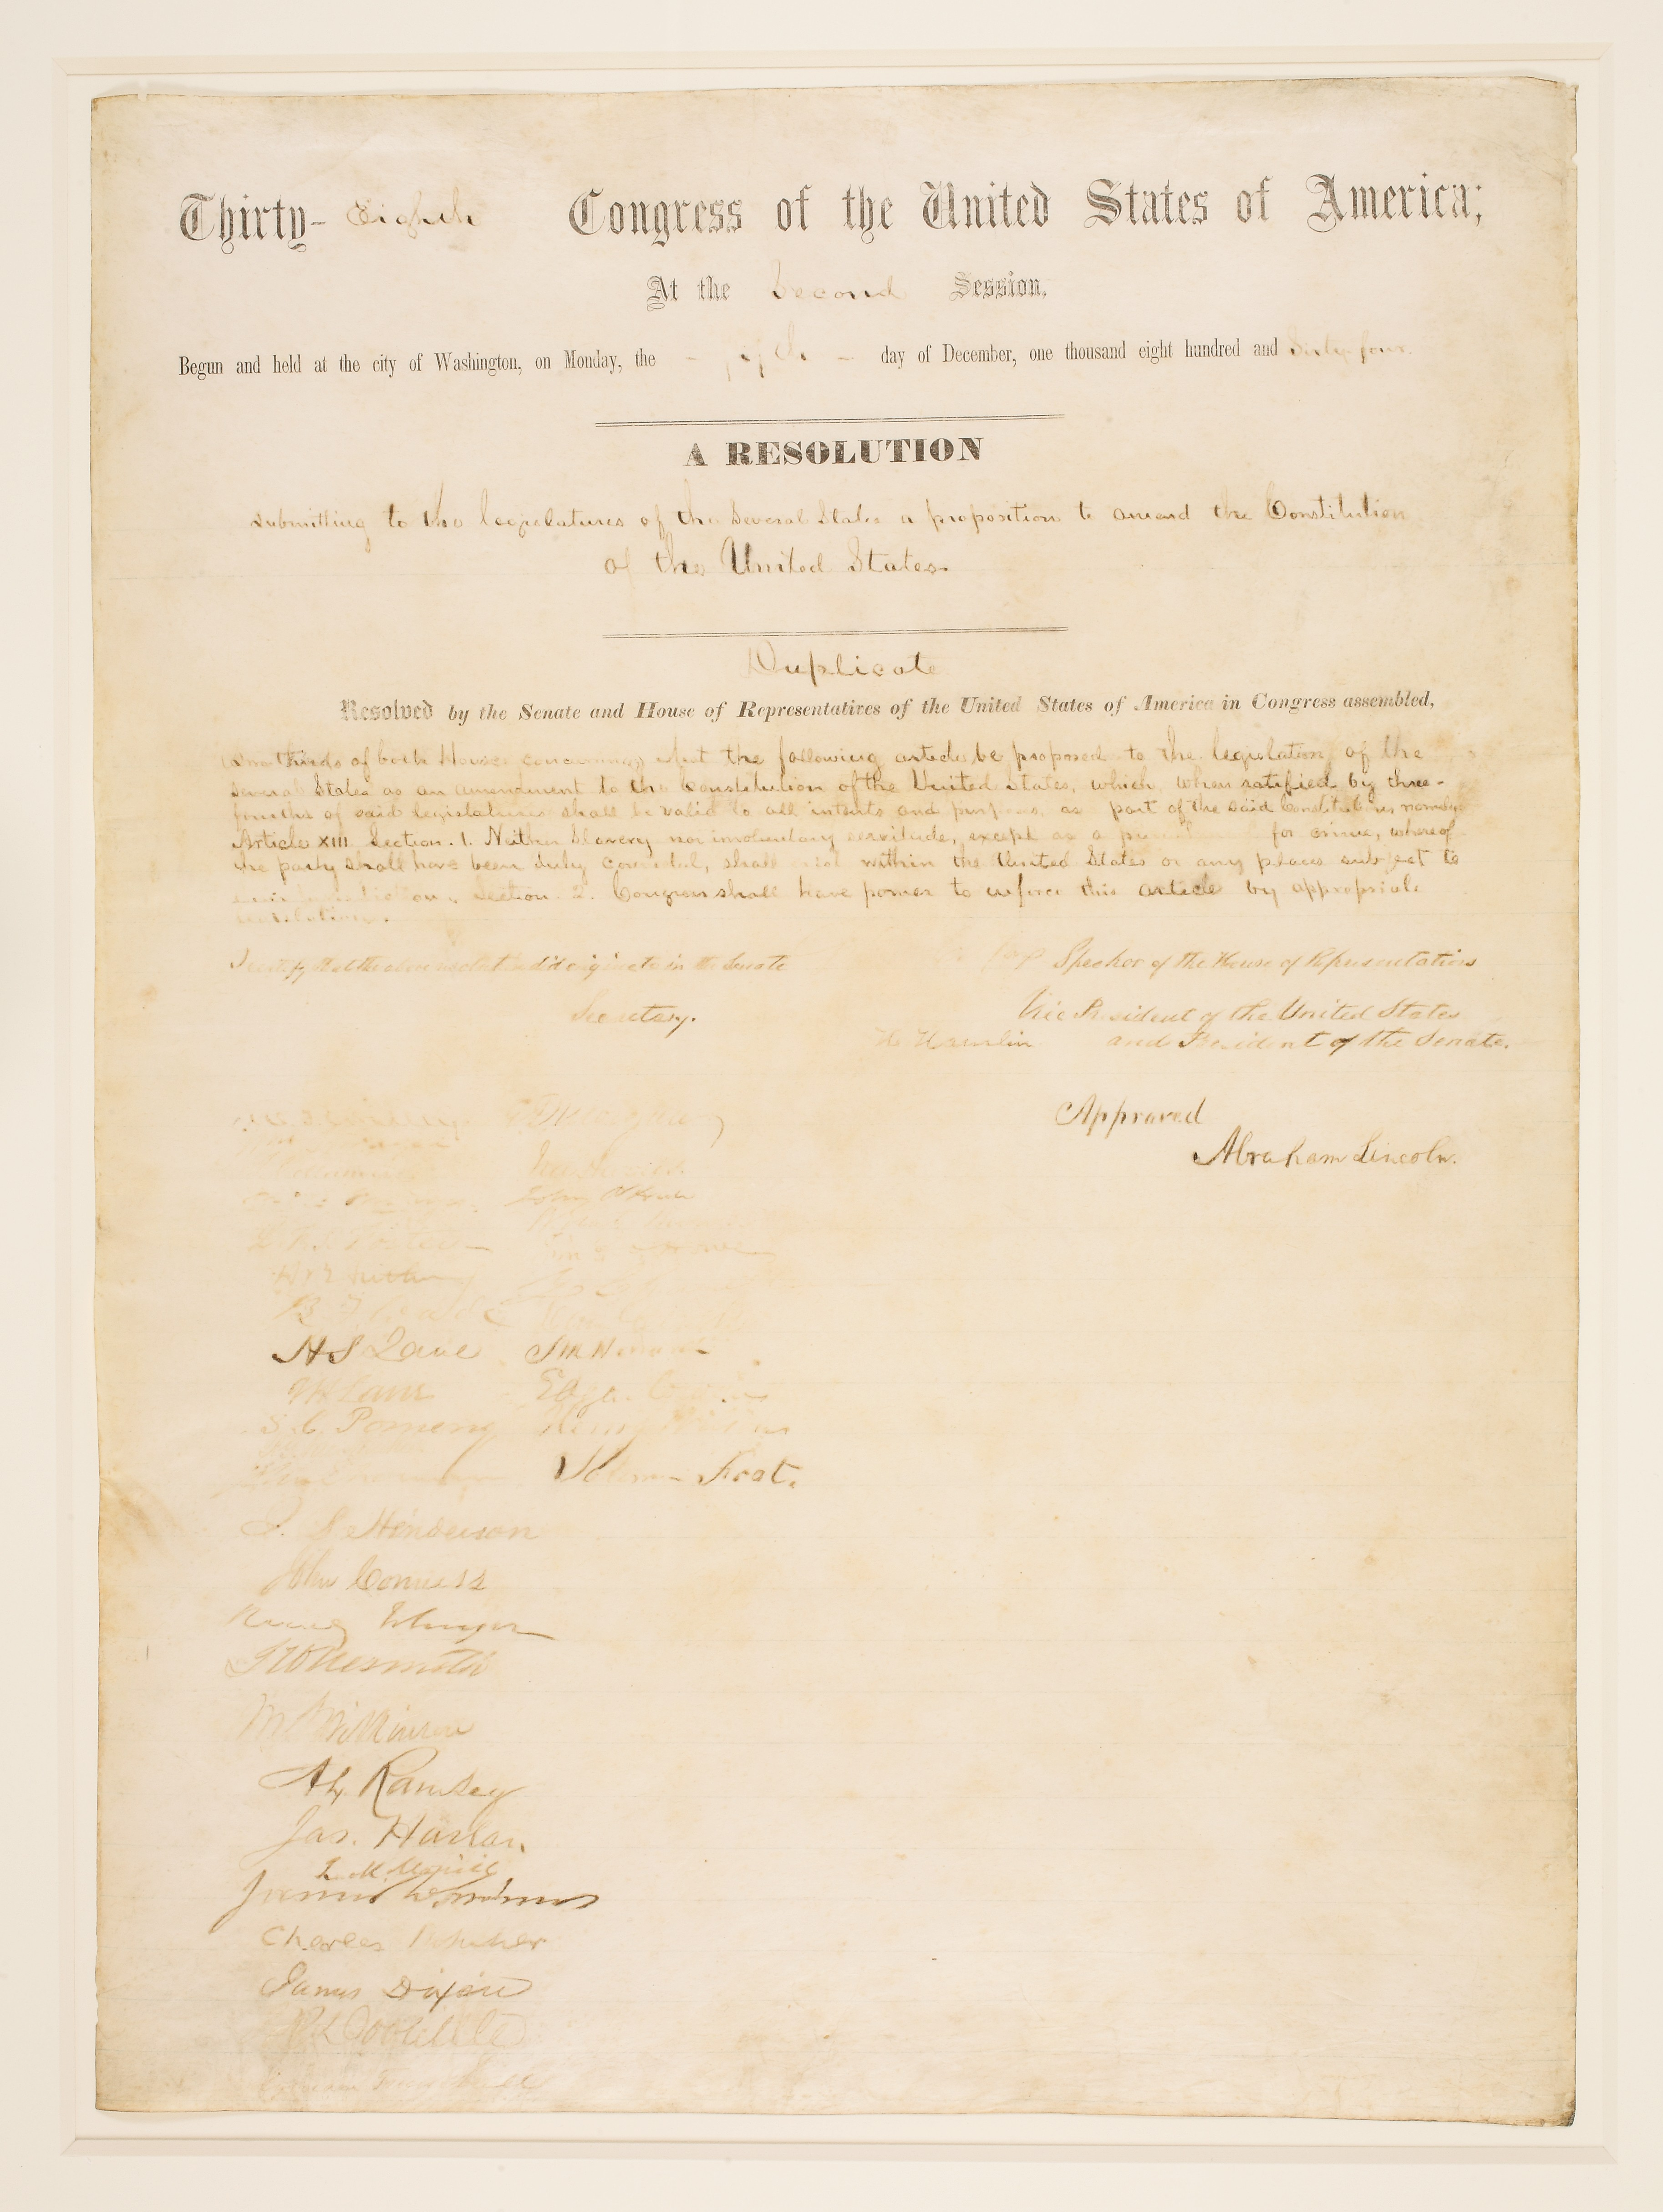 Upcoming Auction Spans 200 Years of U.S. History